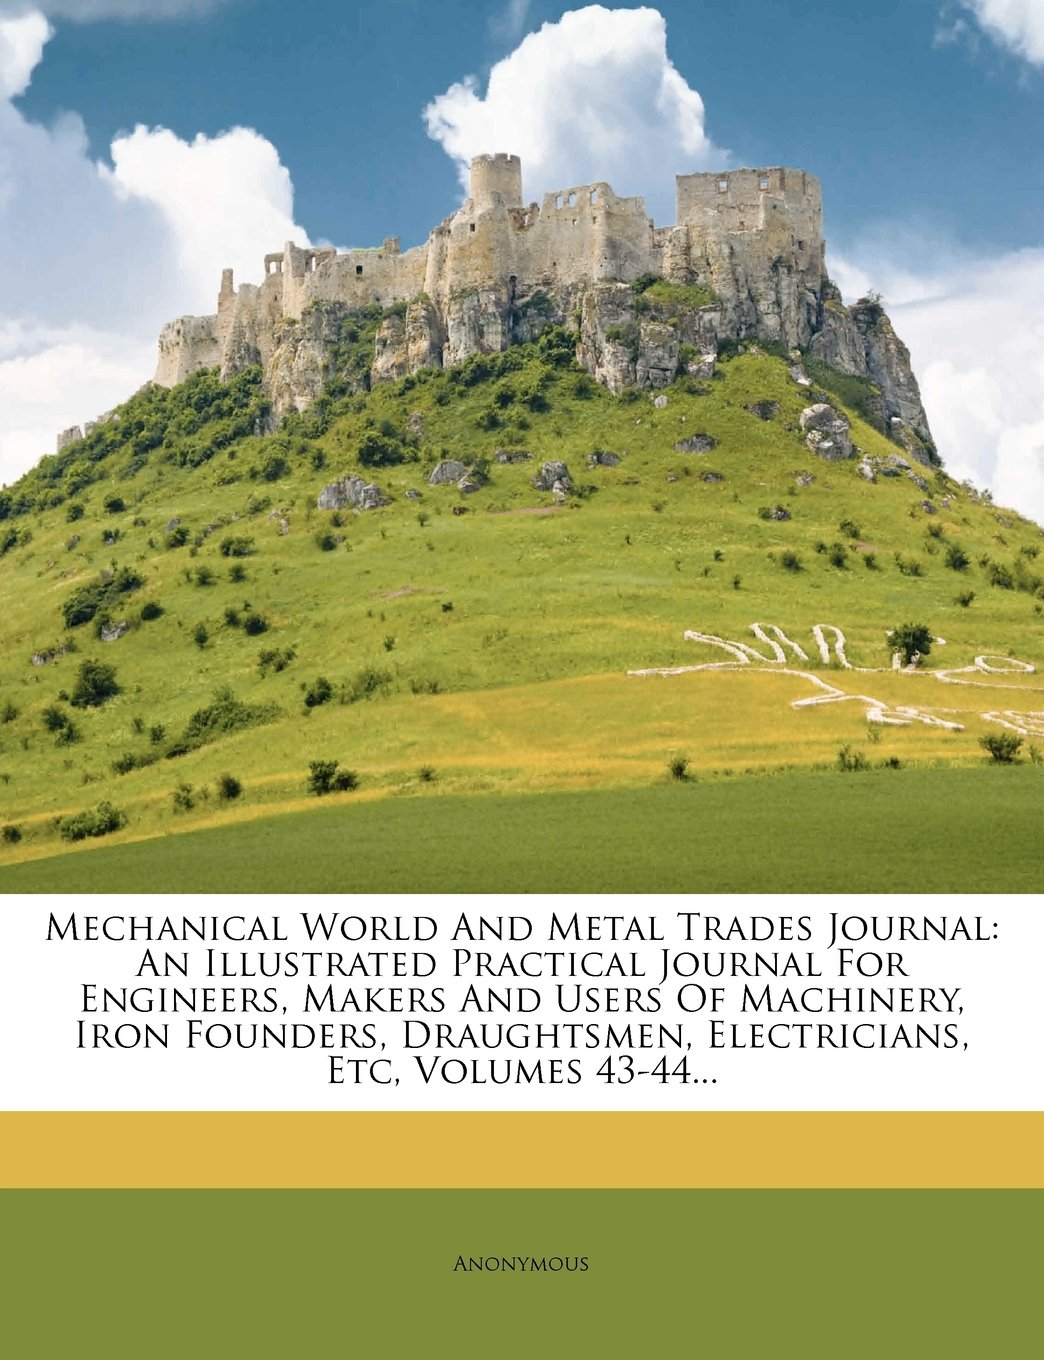 Read Online Mechanical World And Metal Trades Journal: An Illustrated Practical Journal For Engineers, Makers And Users Of Machinery, Iron Founders, Draughtsmen, Electricians, Etc, Volumes 43-44... ebook